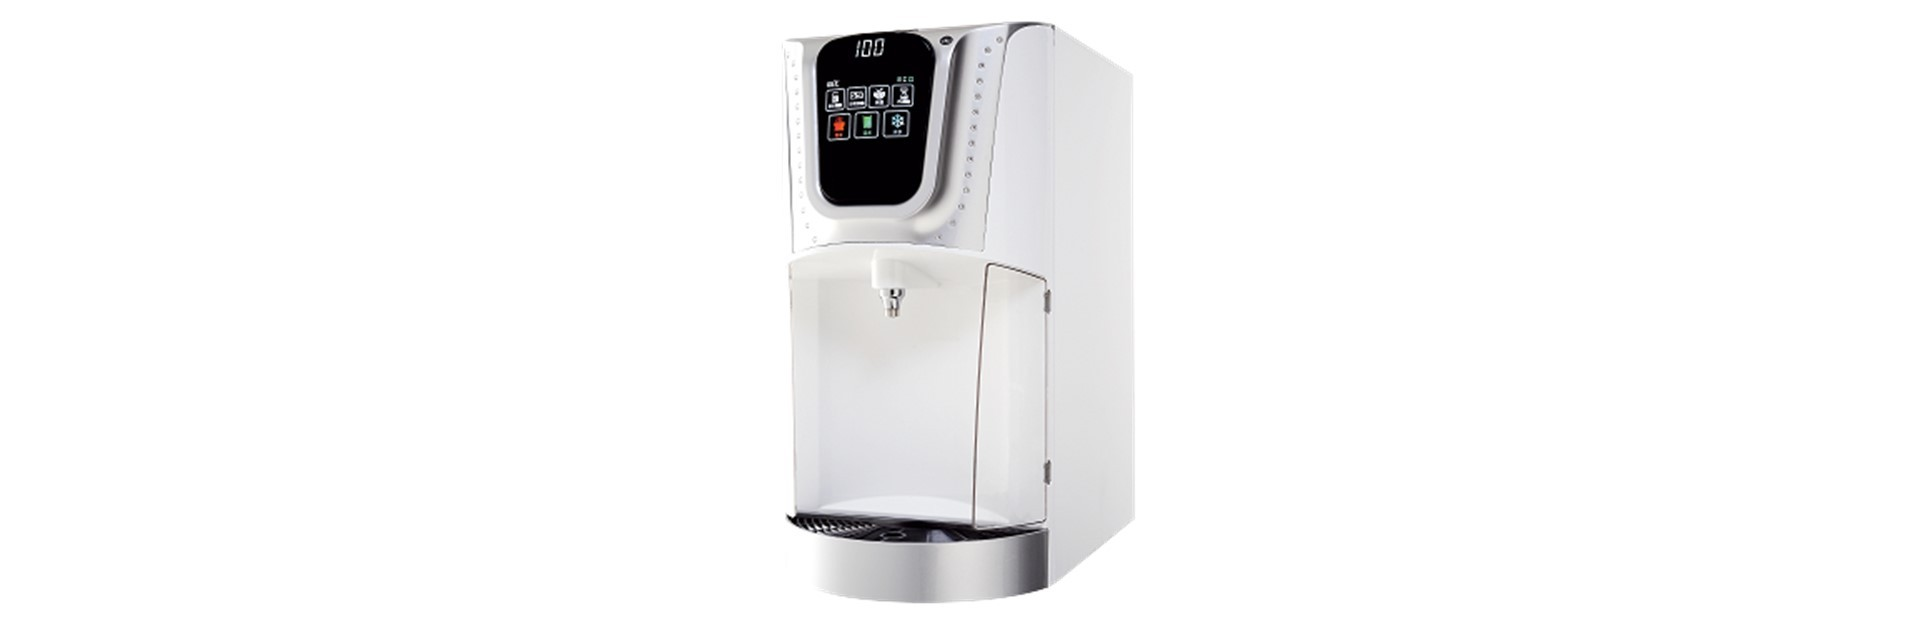 LC-8571Energy-Saving Water Dispenser